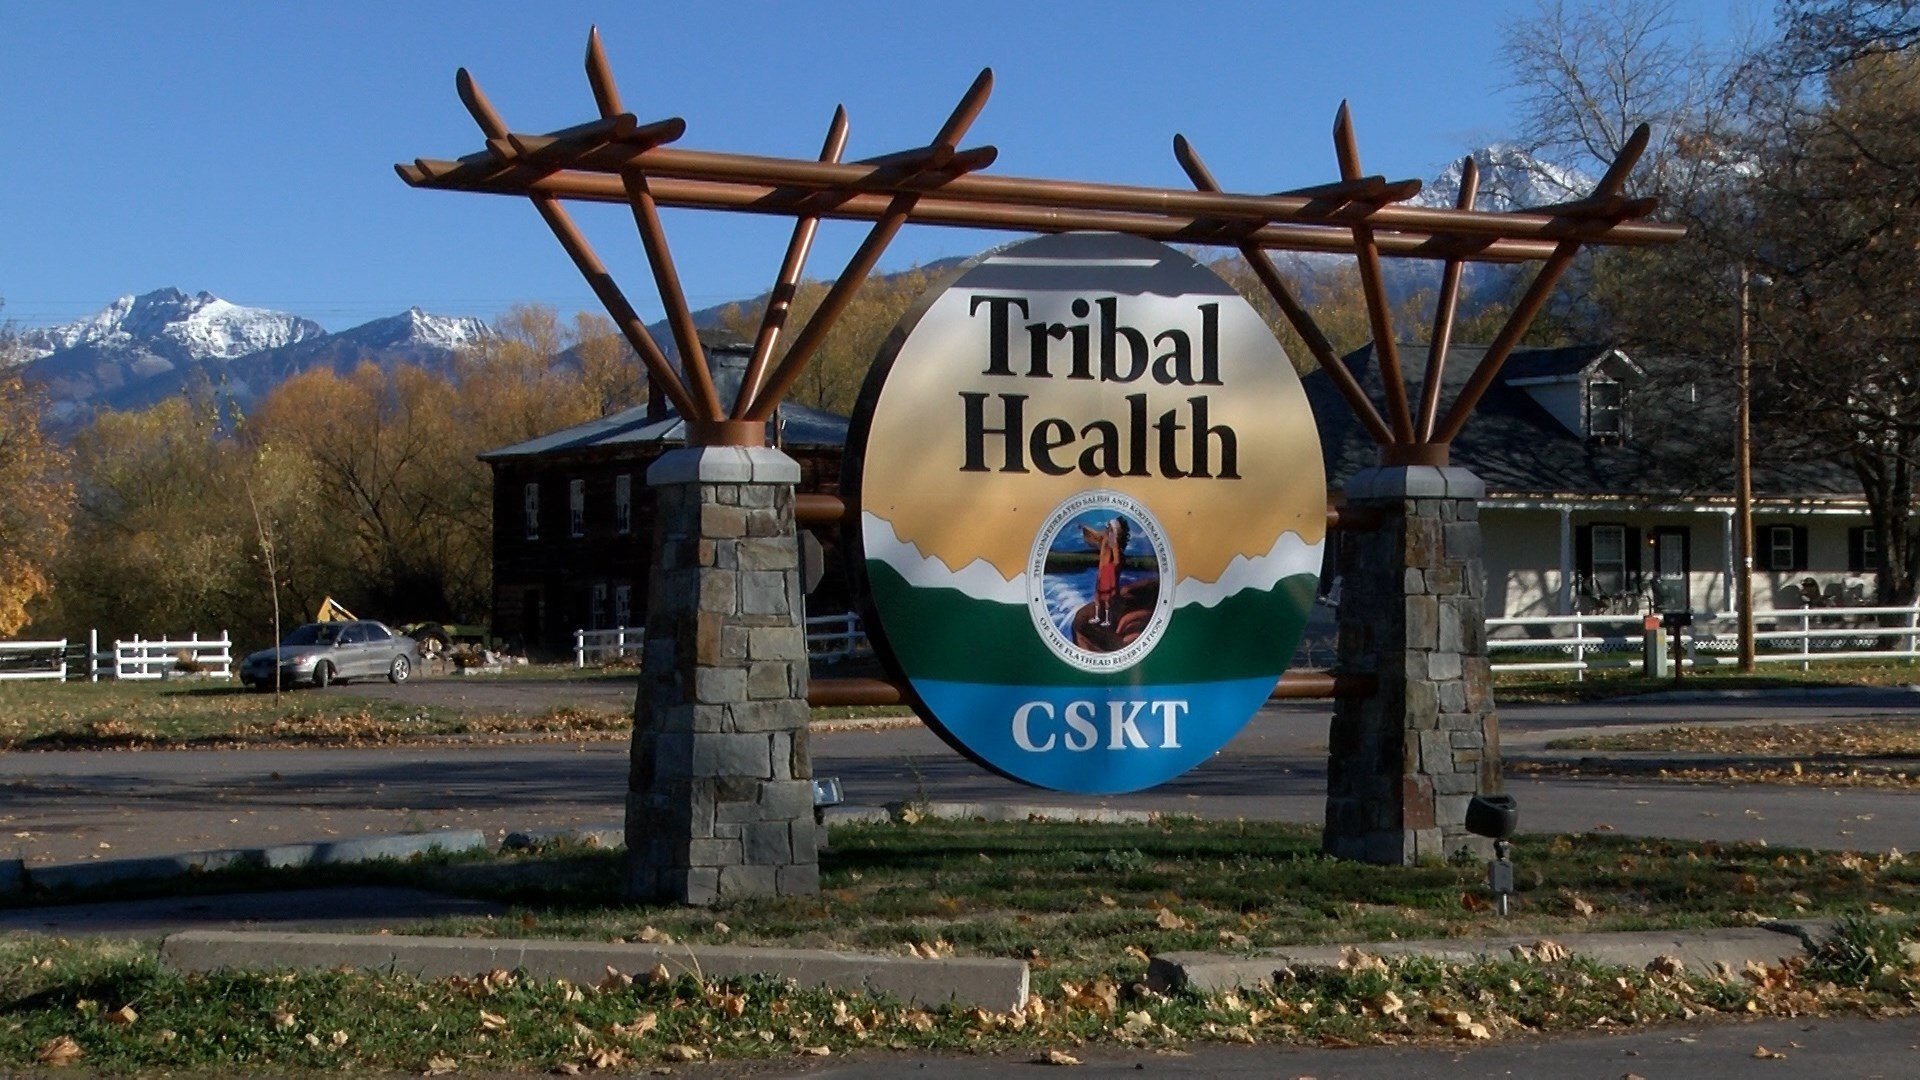 Confederated Salish and Kootenai Tribal Health clinic in St. Ignatius